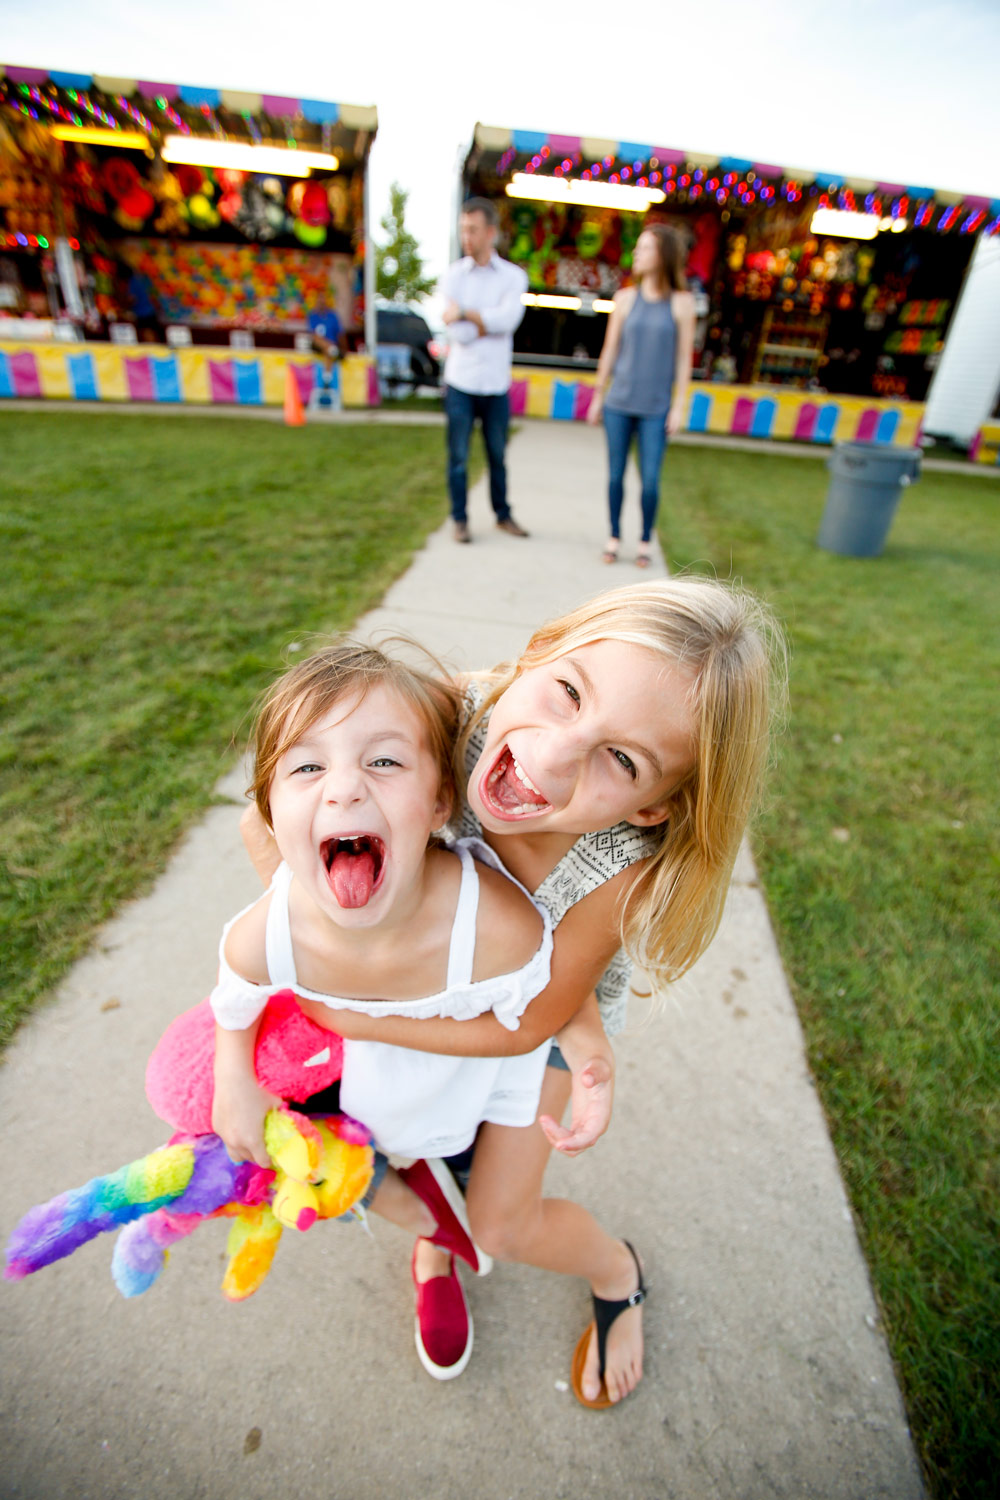 family-portrait-huntley-candid-lifestyle-carnival-kids-children-ruthie-hauge-photography.jpg